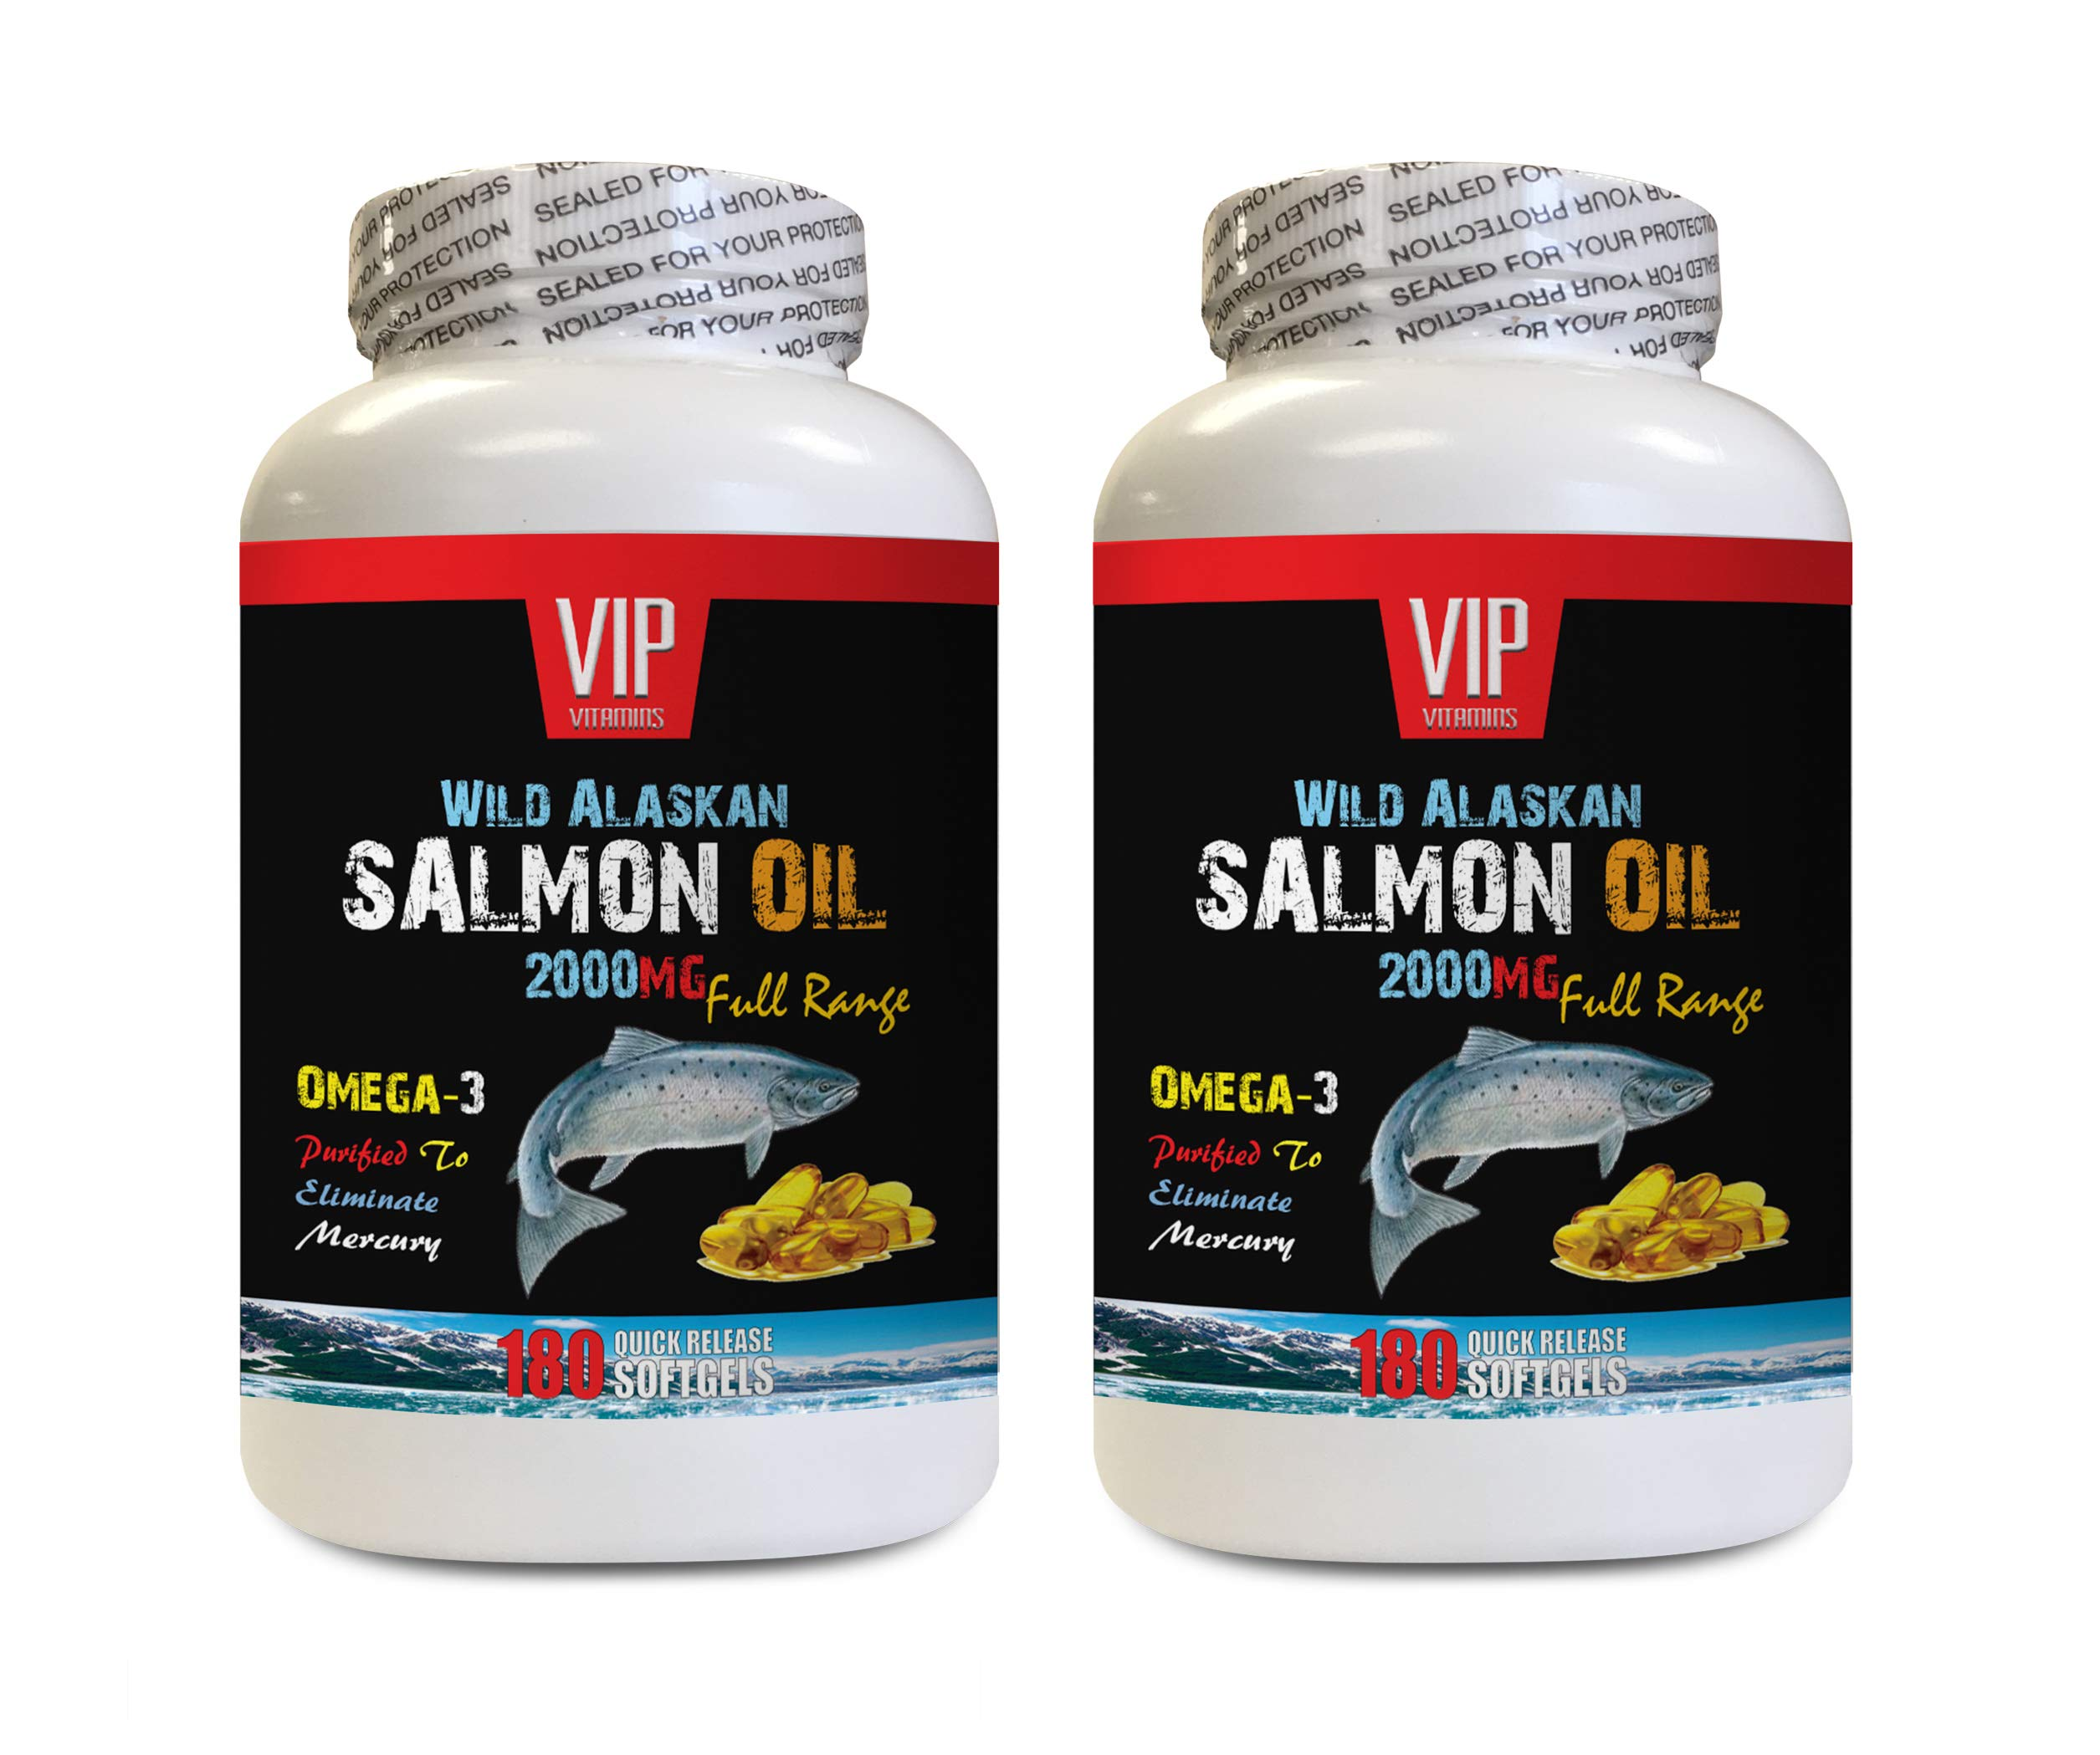 Heart Health Formula - Wild Alaskan Salmon Oil 2000MG - Full Range - Fish Oil Omega 3 Triple Strength - 2 Bottles 360 Softgels by VIP VITAMINS